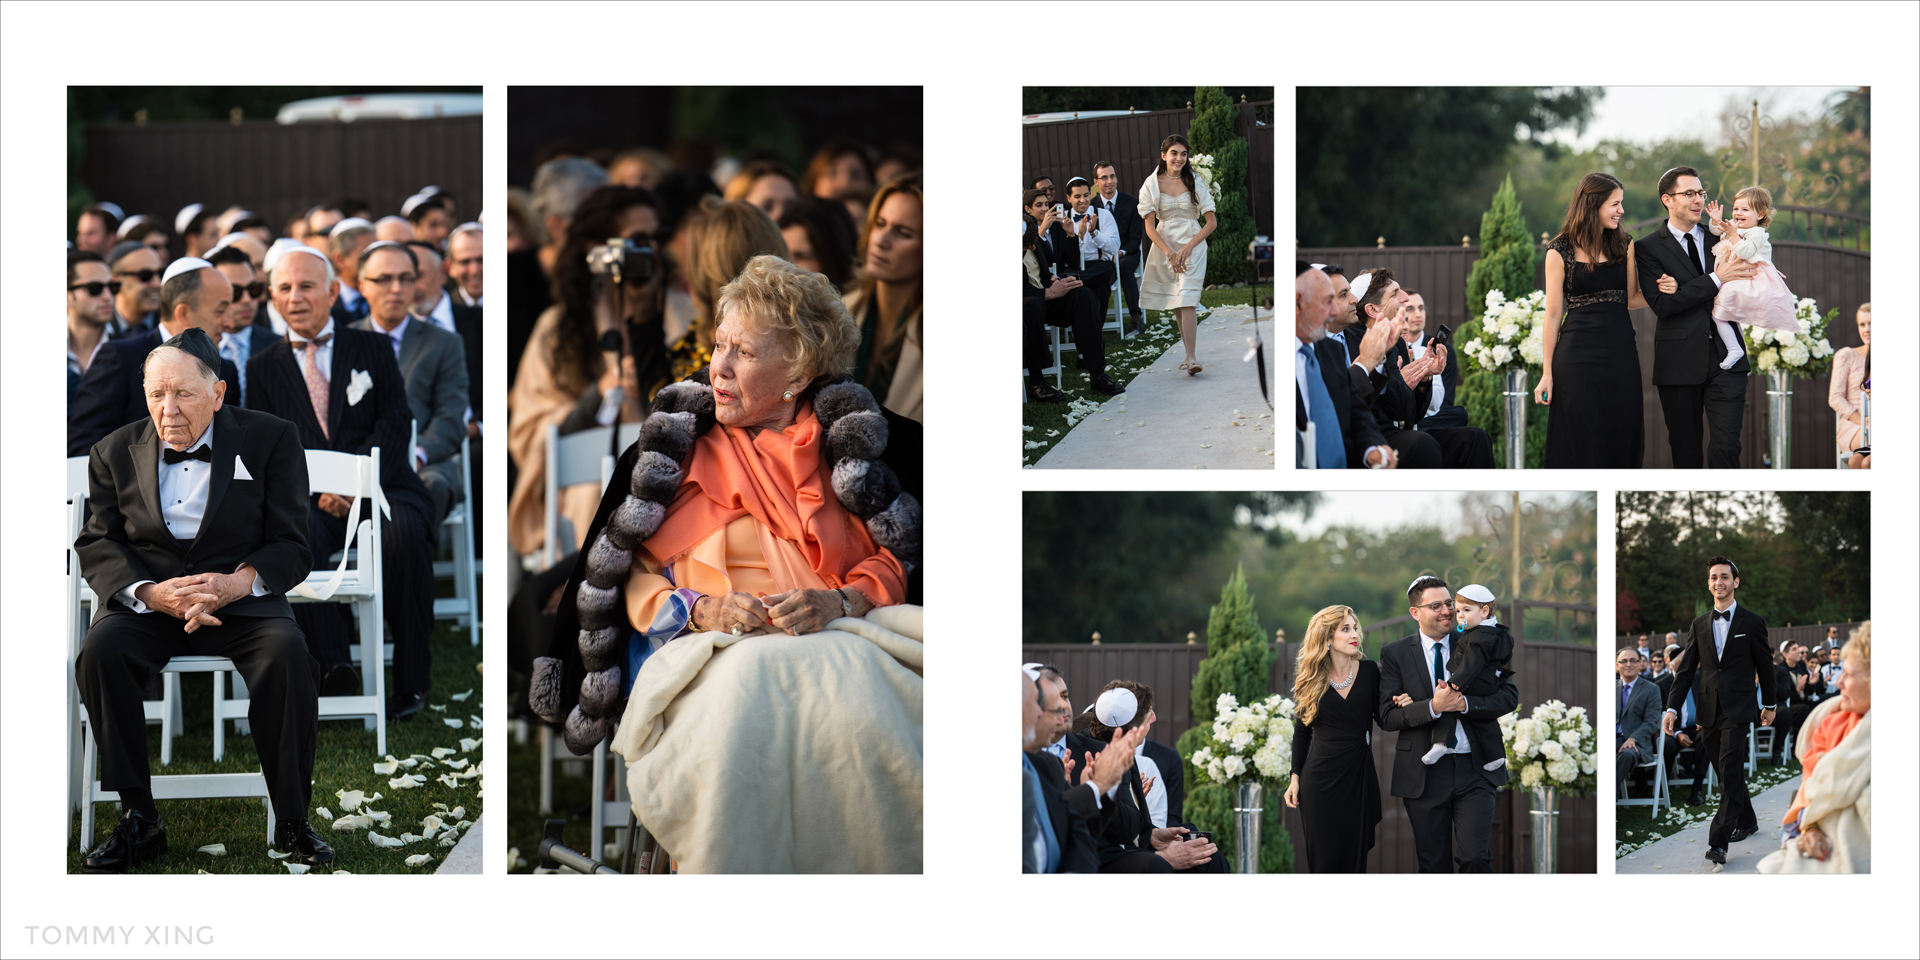 Los Angeles Jewishg Wedding at Riviera Country Club in Pacific Palisades 洛杉矶婚礼婚纱摄影师  Tommy Xing Photography 21.jpg